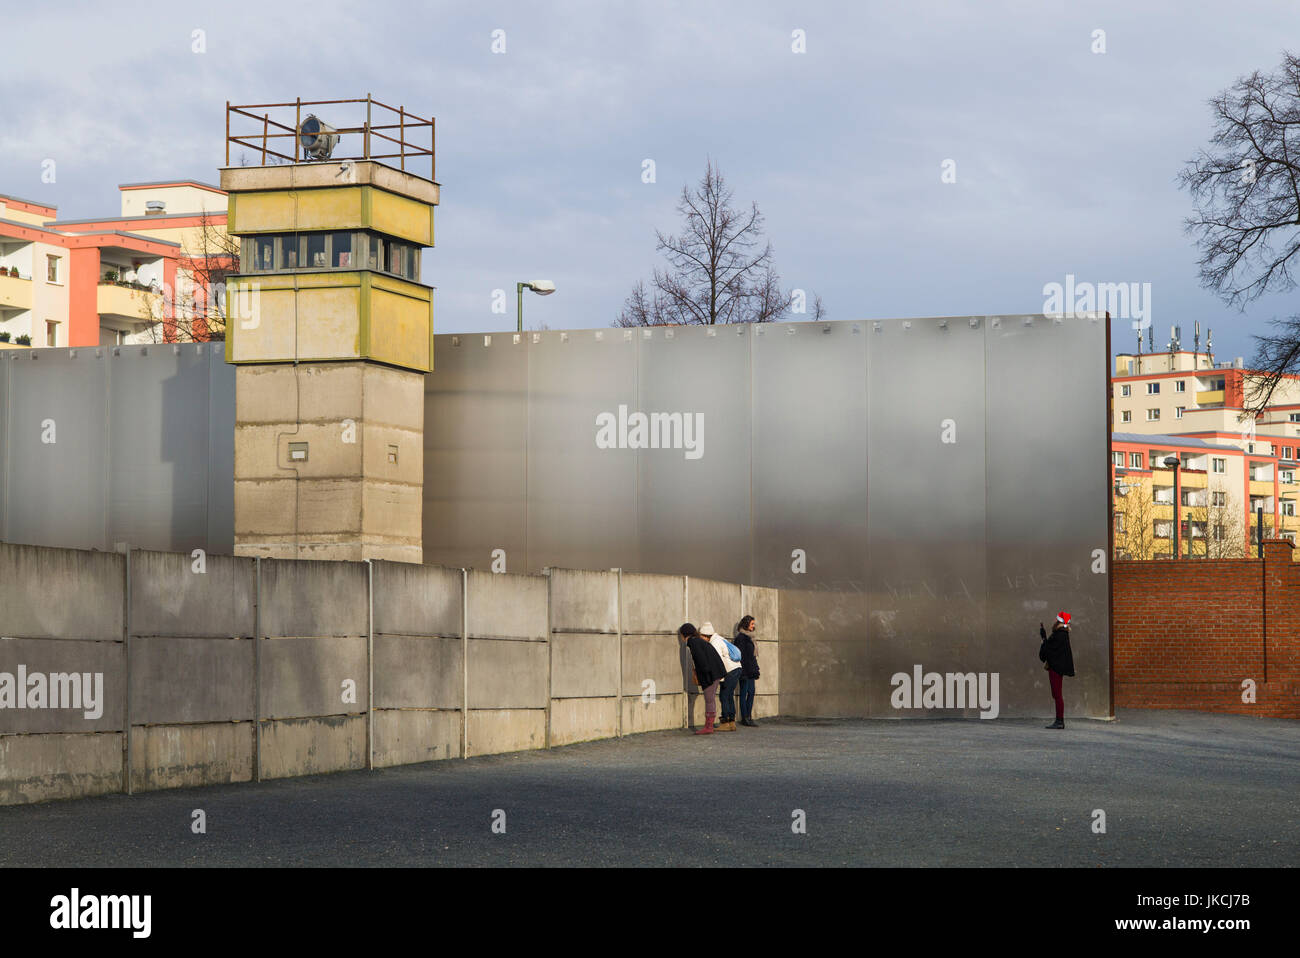 Germany, Berlin, Prenzlauer Berg, Berlin Wall Memorial, former watchtower - Stock Image